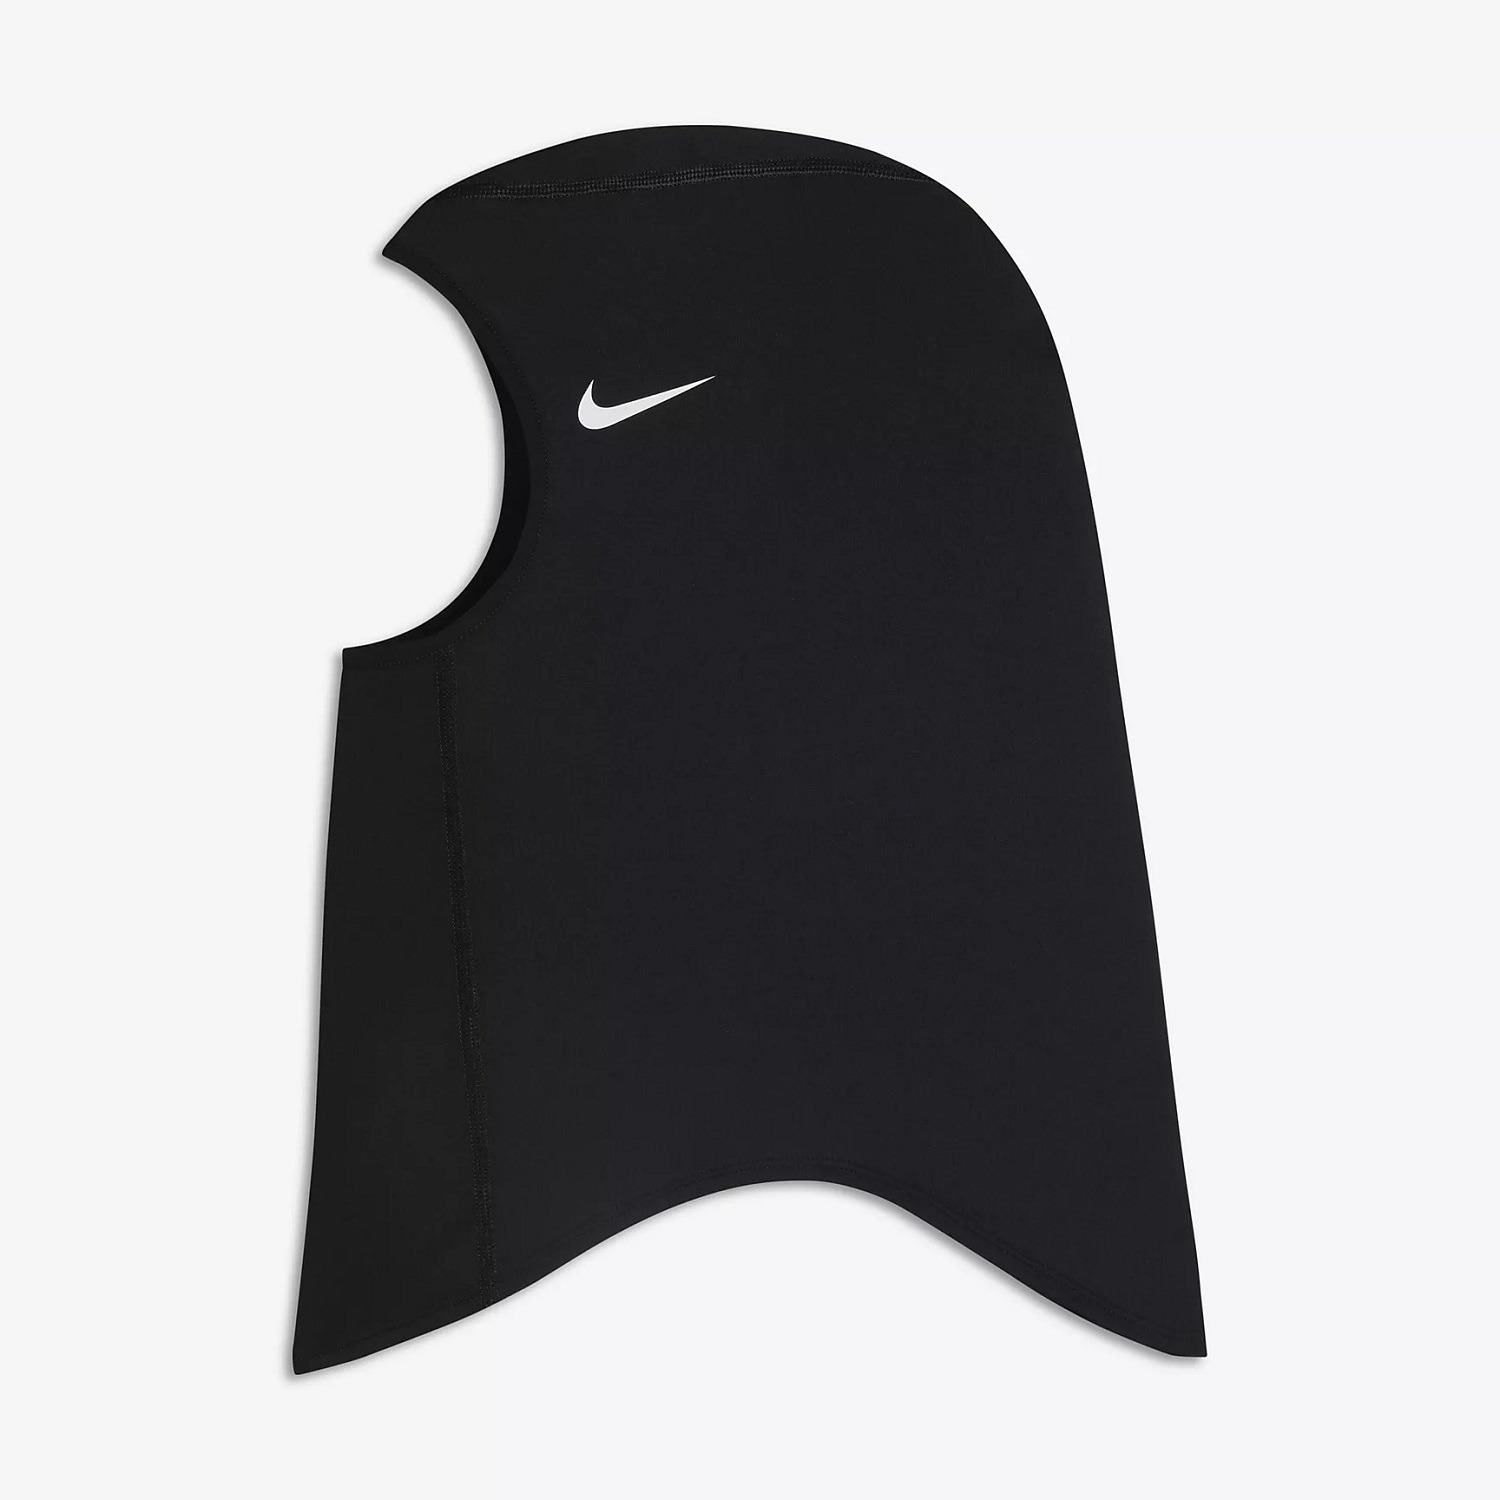 Baby Bette Nike Pro Hijab Now Available For Pre-order